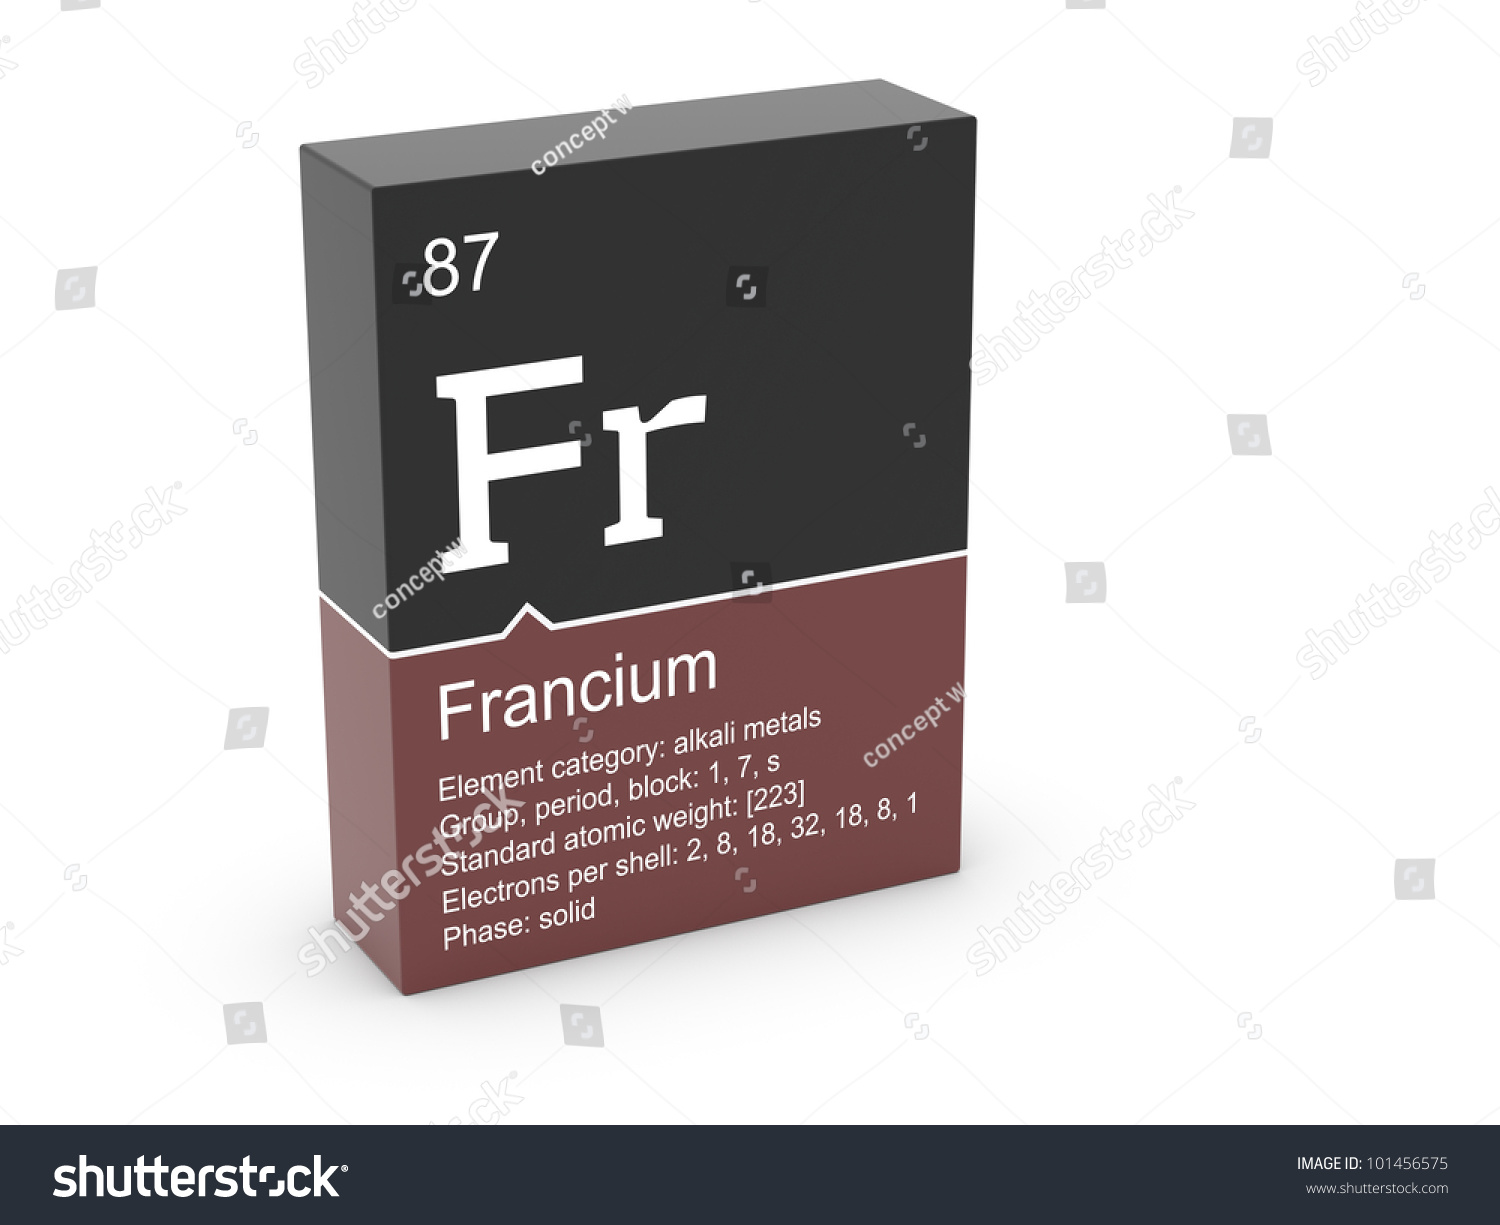 Carbon dioxide periodic table symbol gallery periodic table images francium on periodic table aviongoldcorp francium mendeleevs periodic table stock ilration 101456575 gamestrikefo gallery gamestrikefo Choice Image